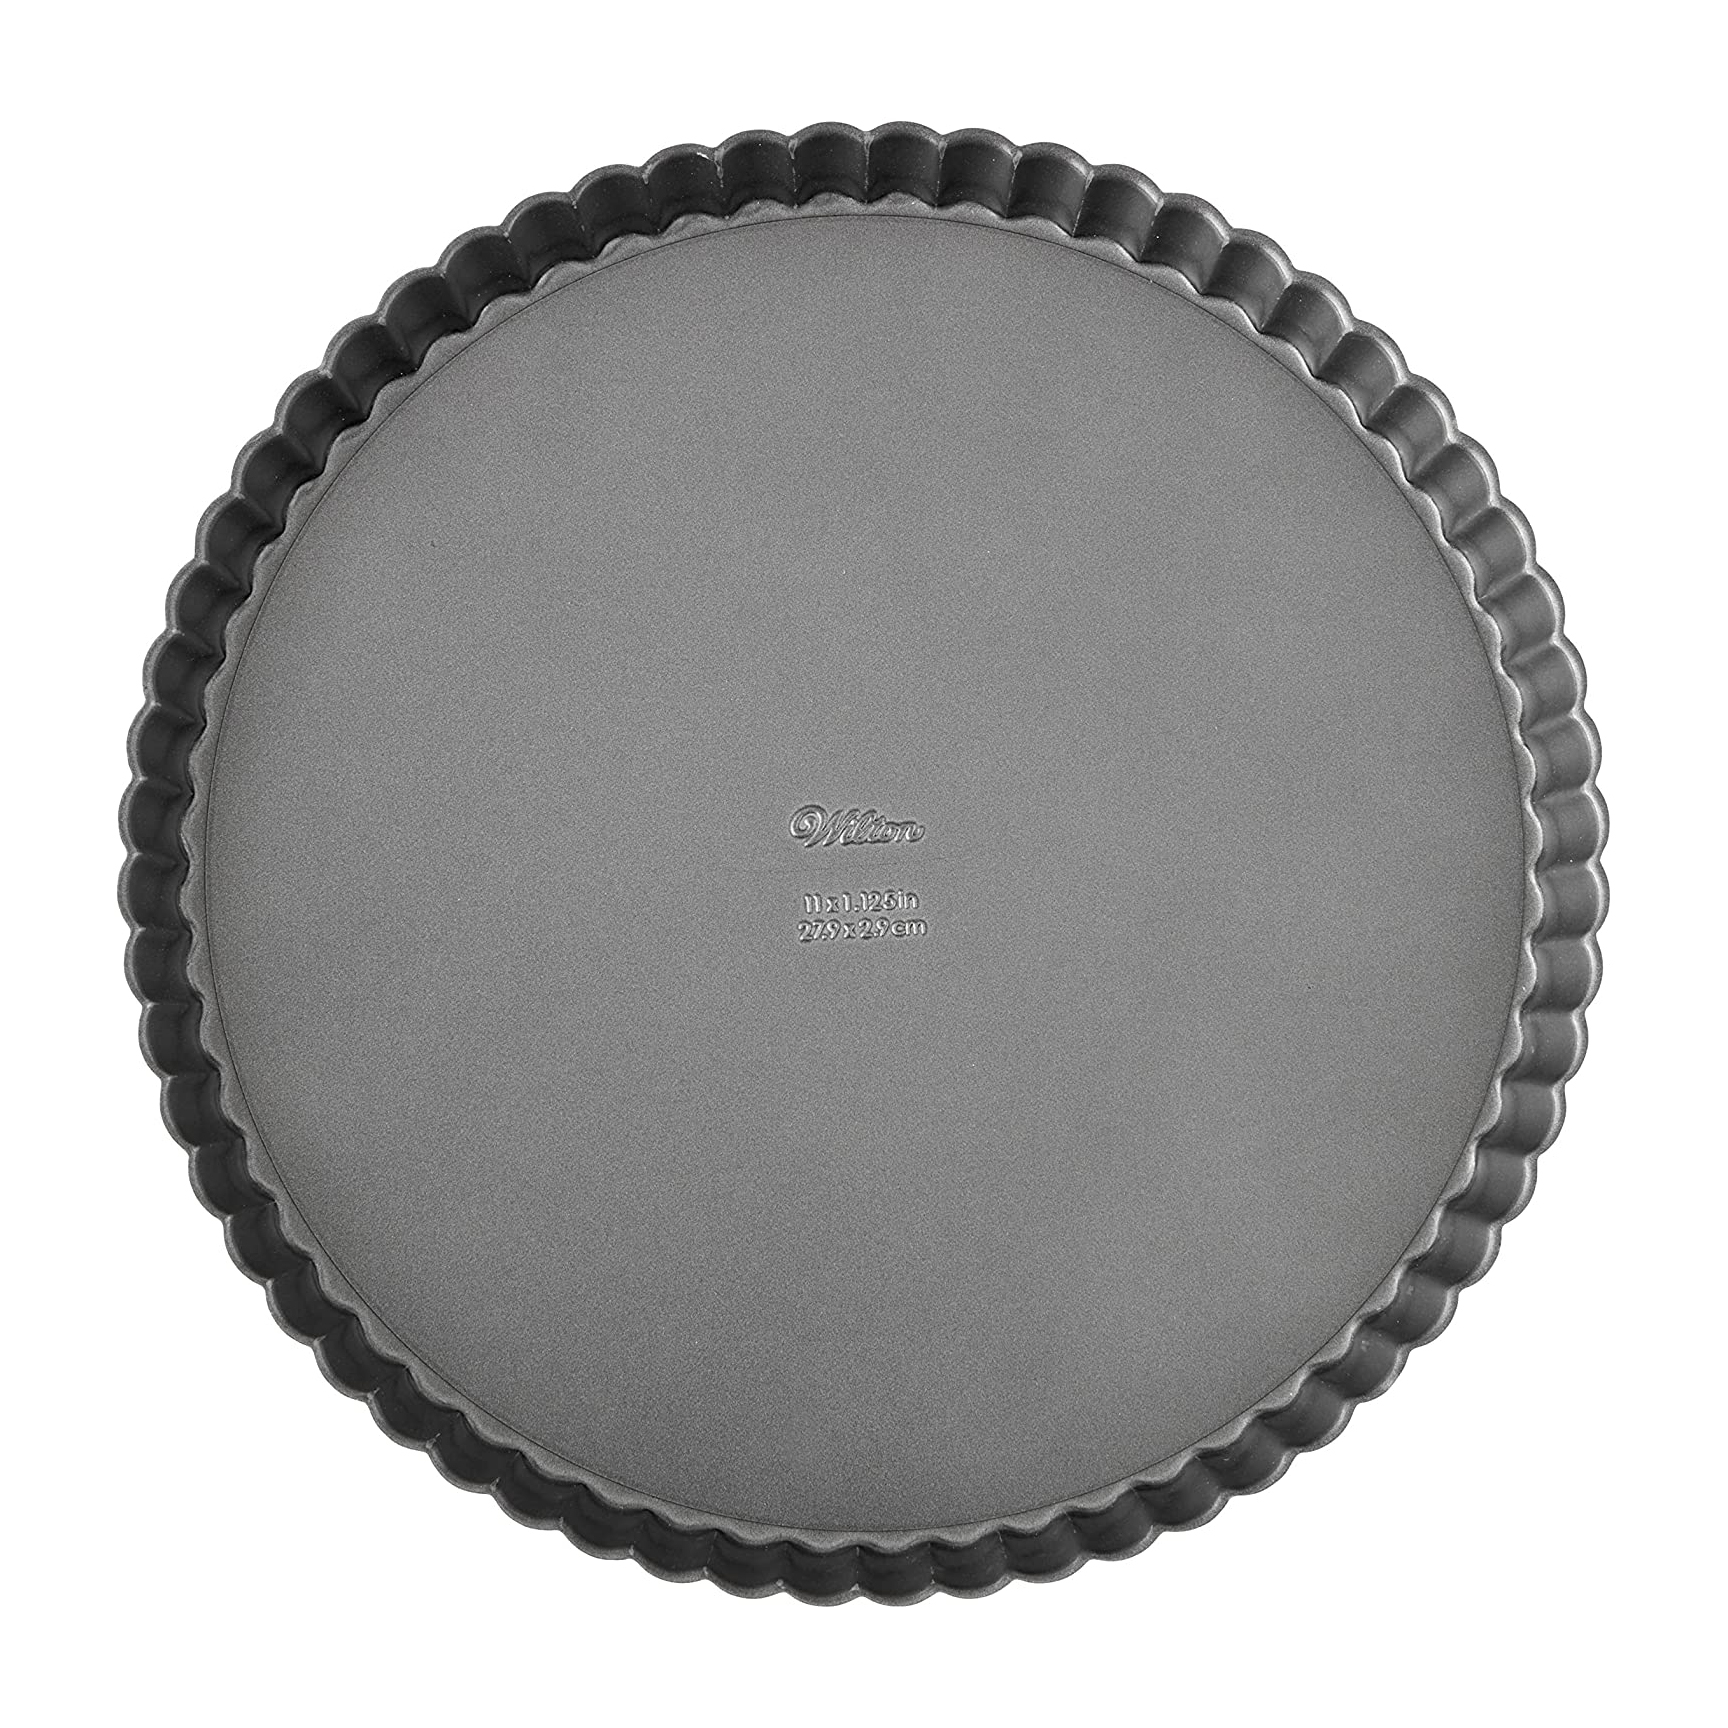 Wilton Excelle Elite Non-Stick Tart and Quiche Pan with Removable Bottom